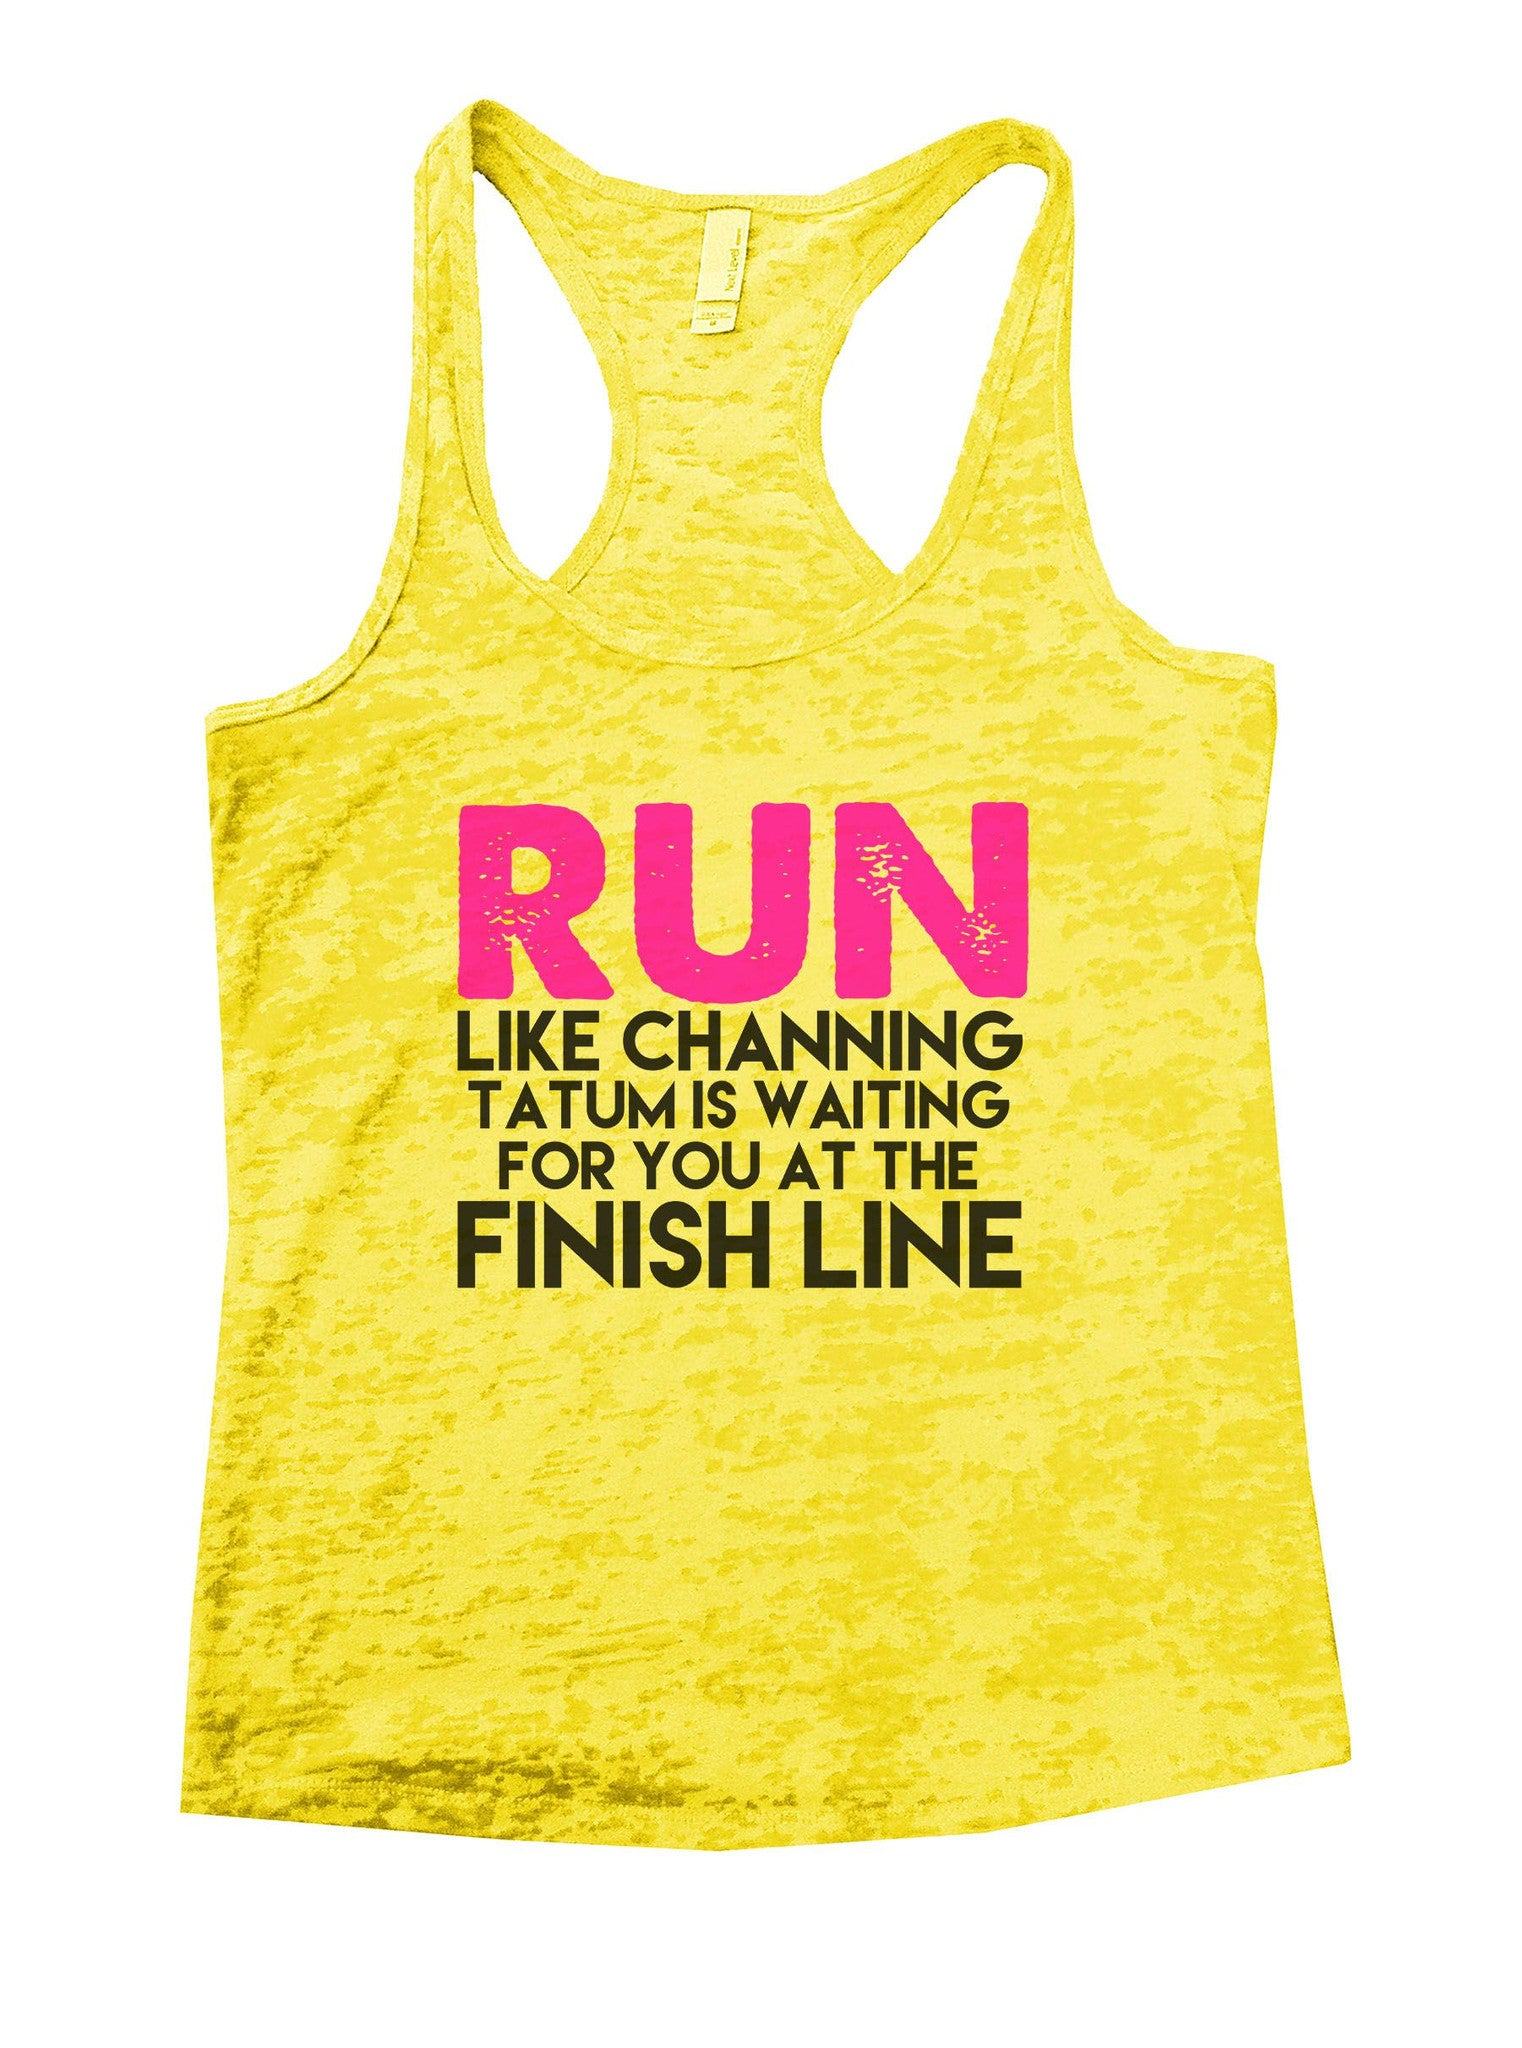 Run Like Channing Tatum Is Waiting For You At The Finish Line Burnout Tank Top By BurnoutTankTops.com - 872 - Funny Shirts Tank Tops Burnouts and Triblends  - 7